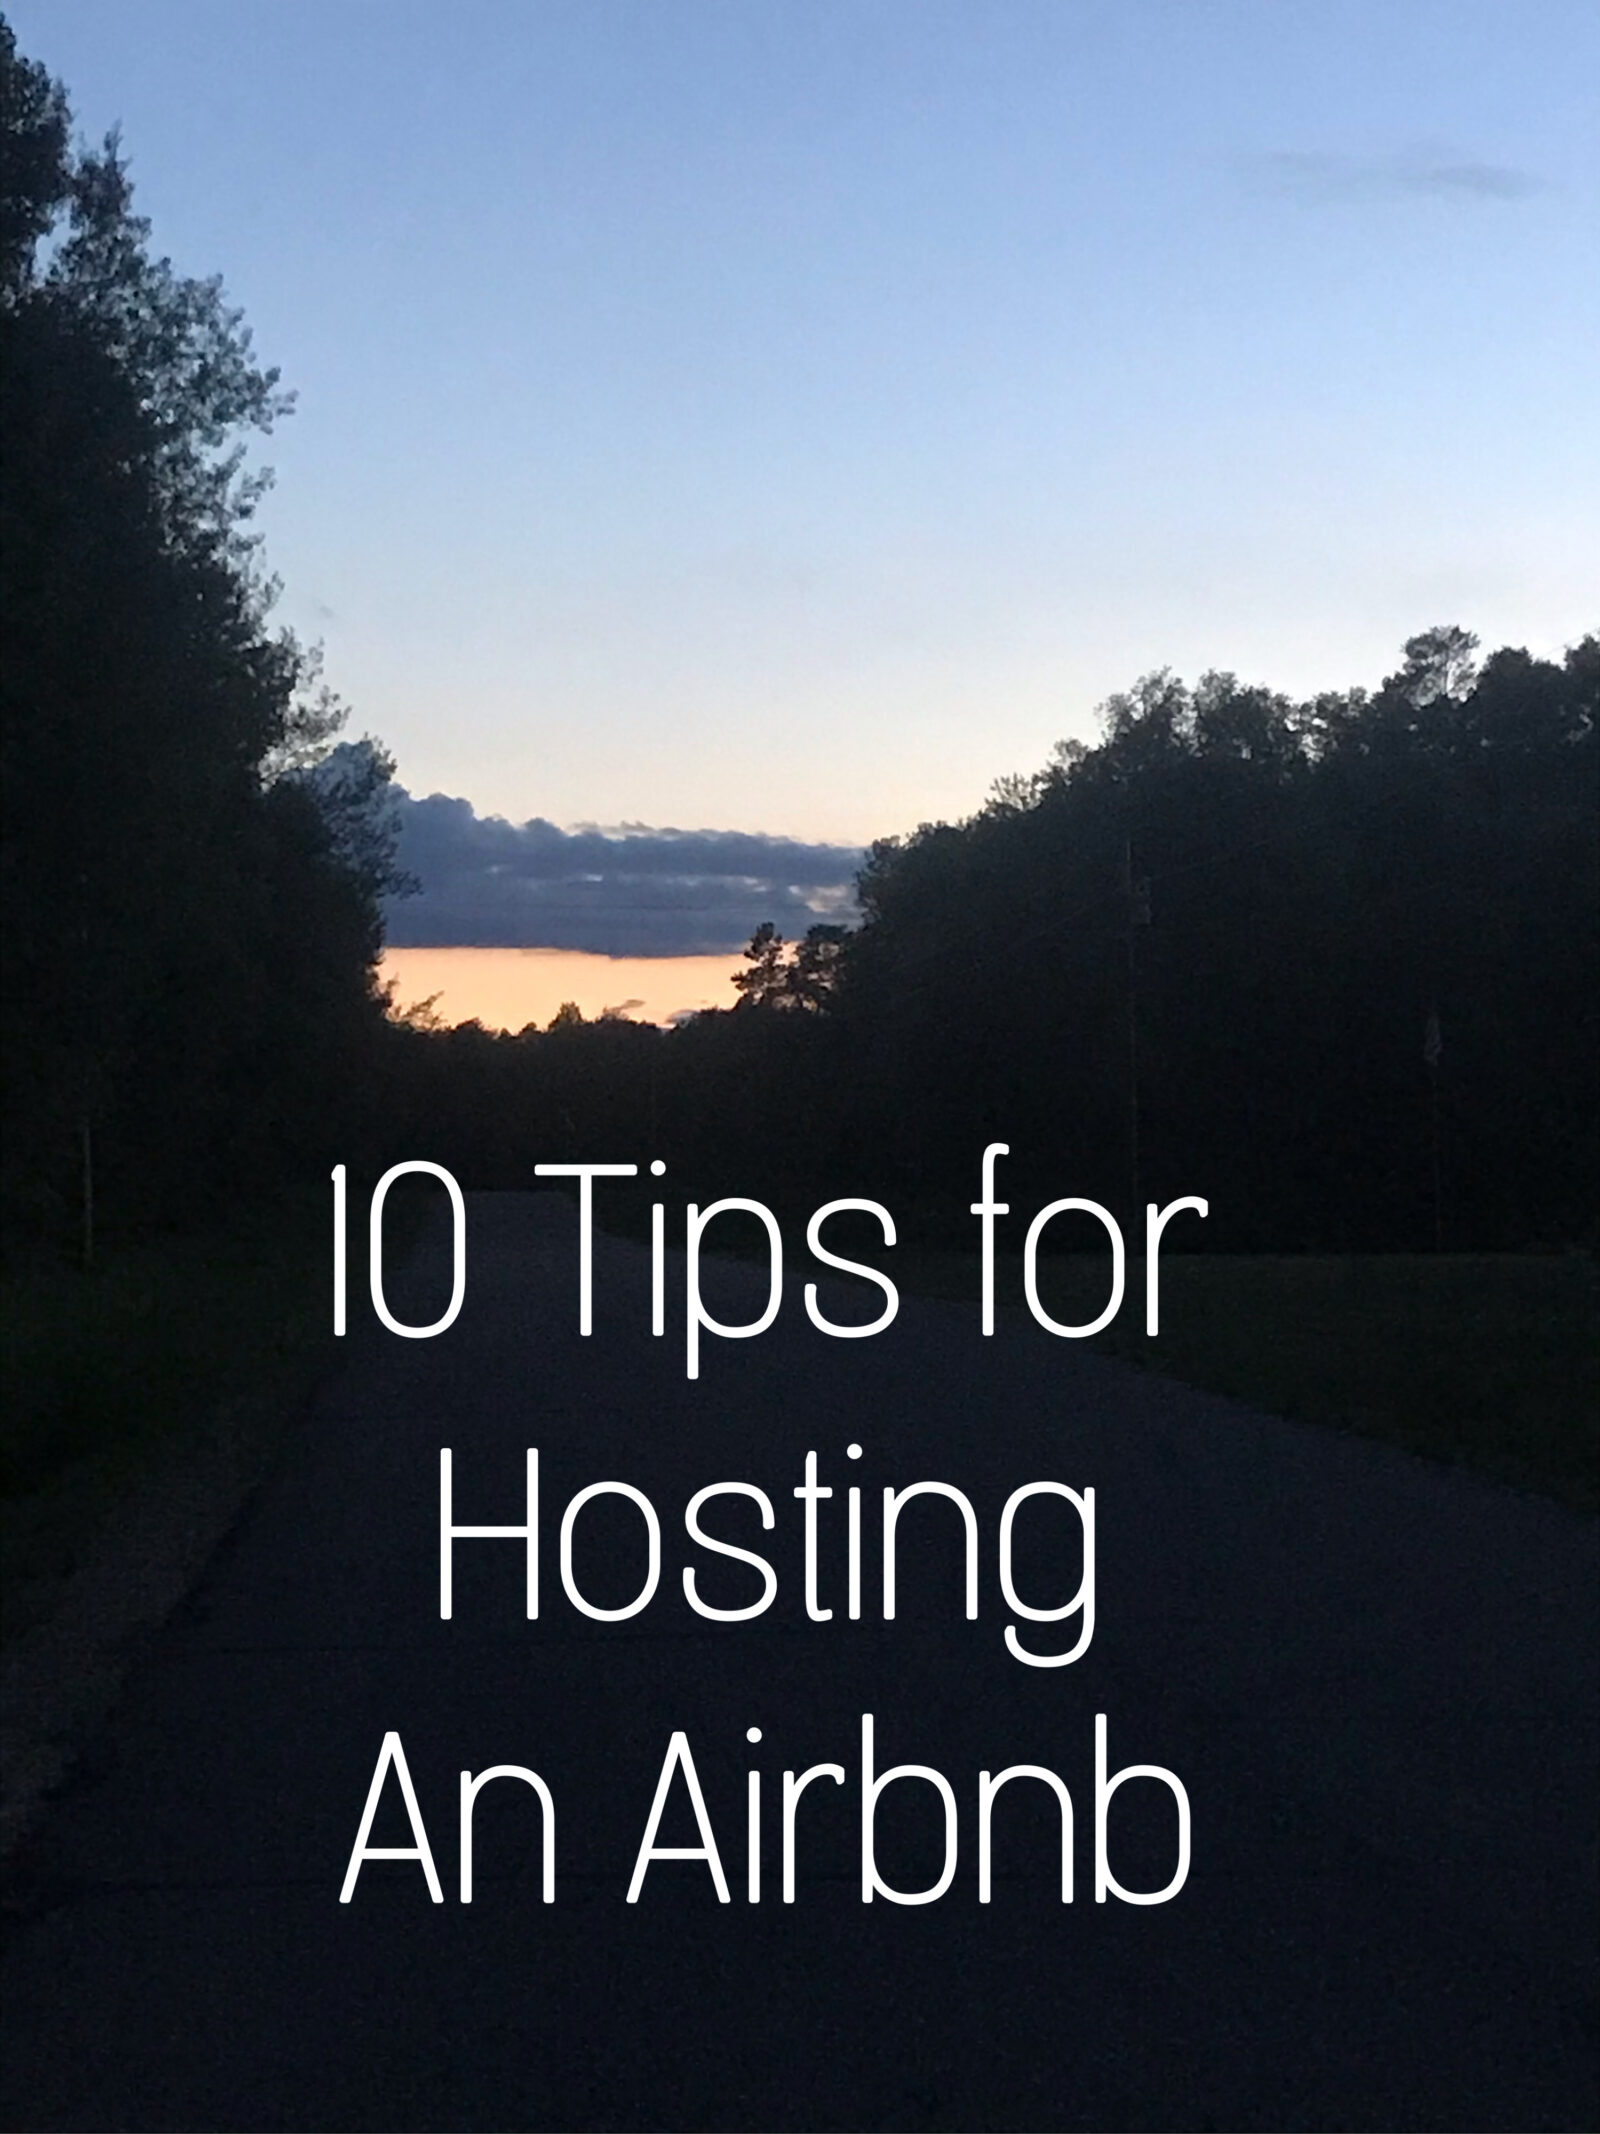 10 Tips for hosting Airbnbs